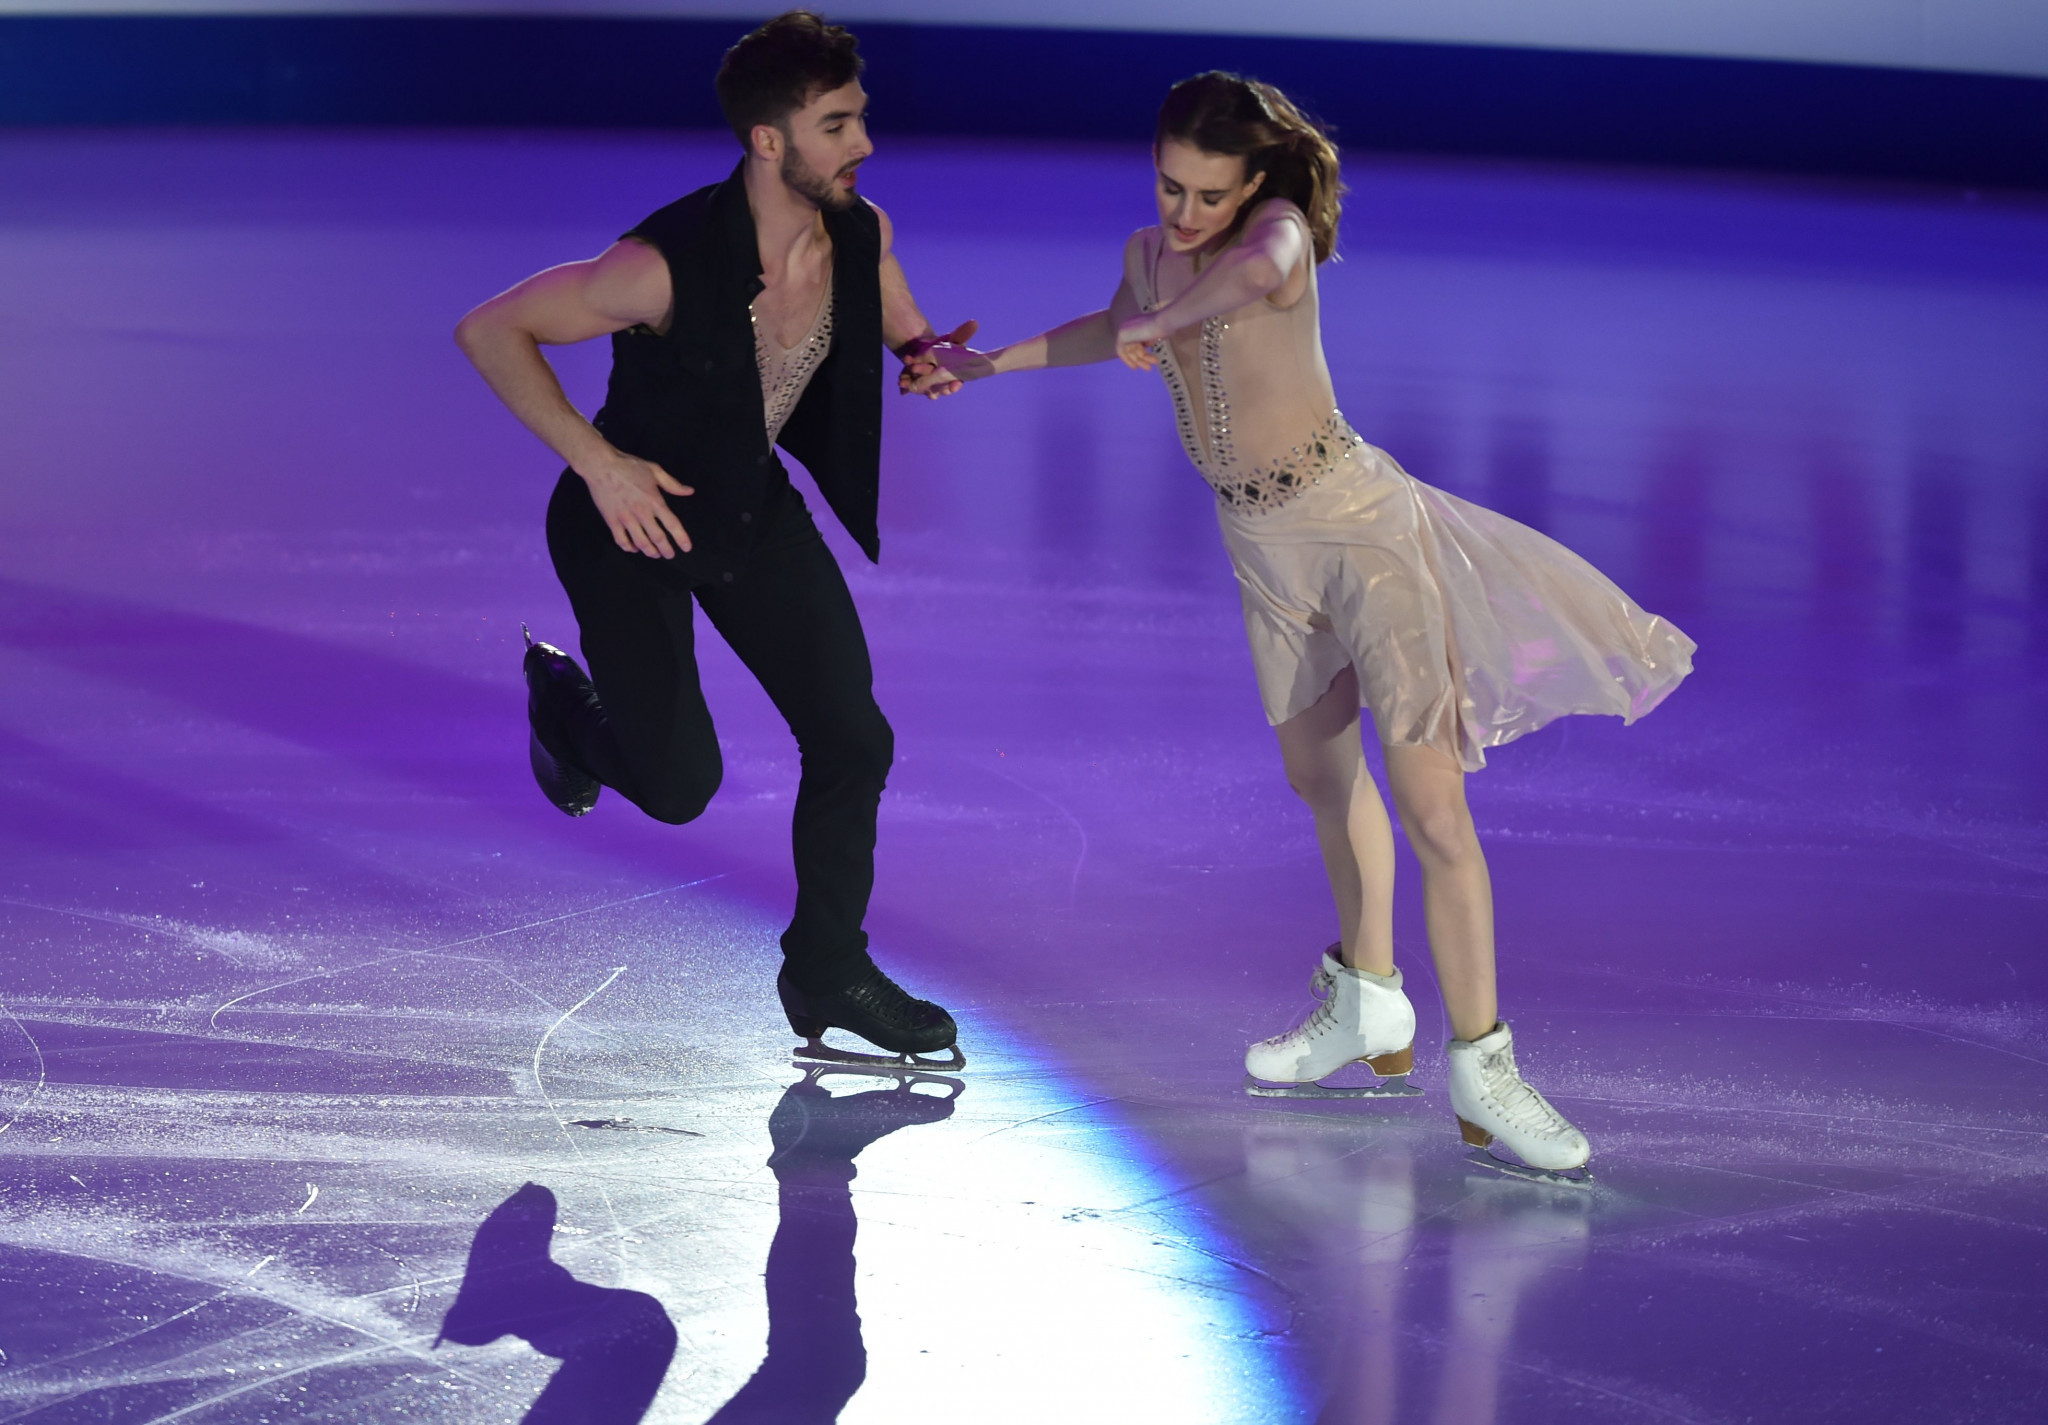 ISU Grand Prix of Figure Skating event in Grenoble cancelled due to coronavirus